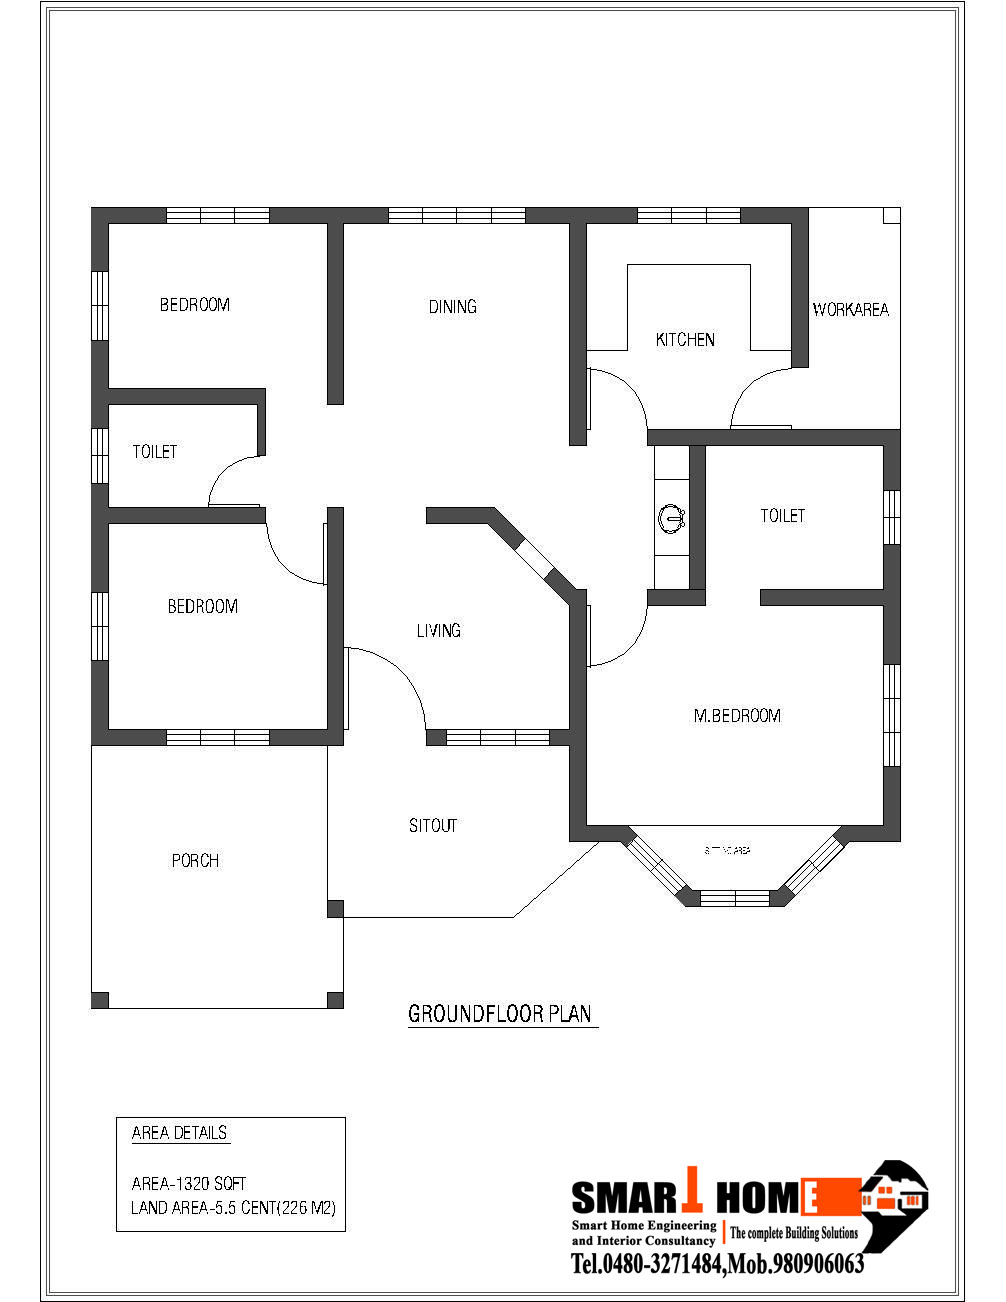 house photos and plans: May 2012